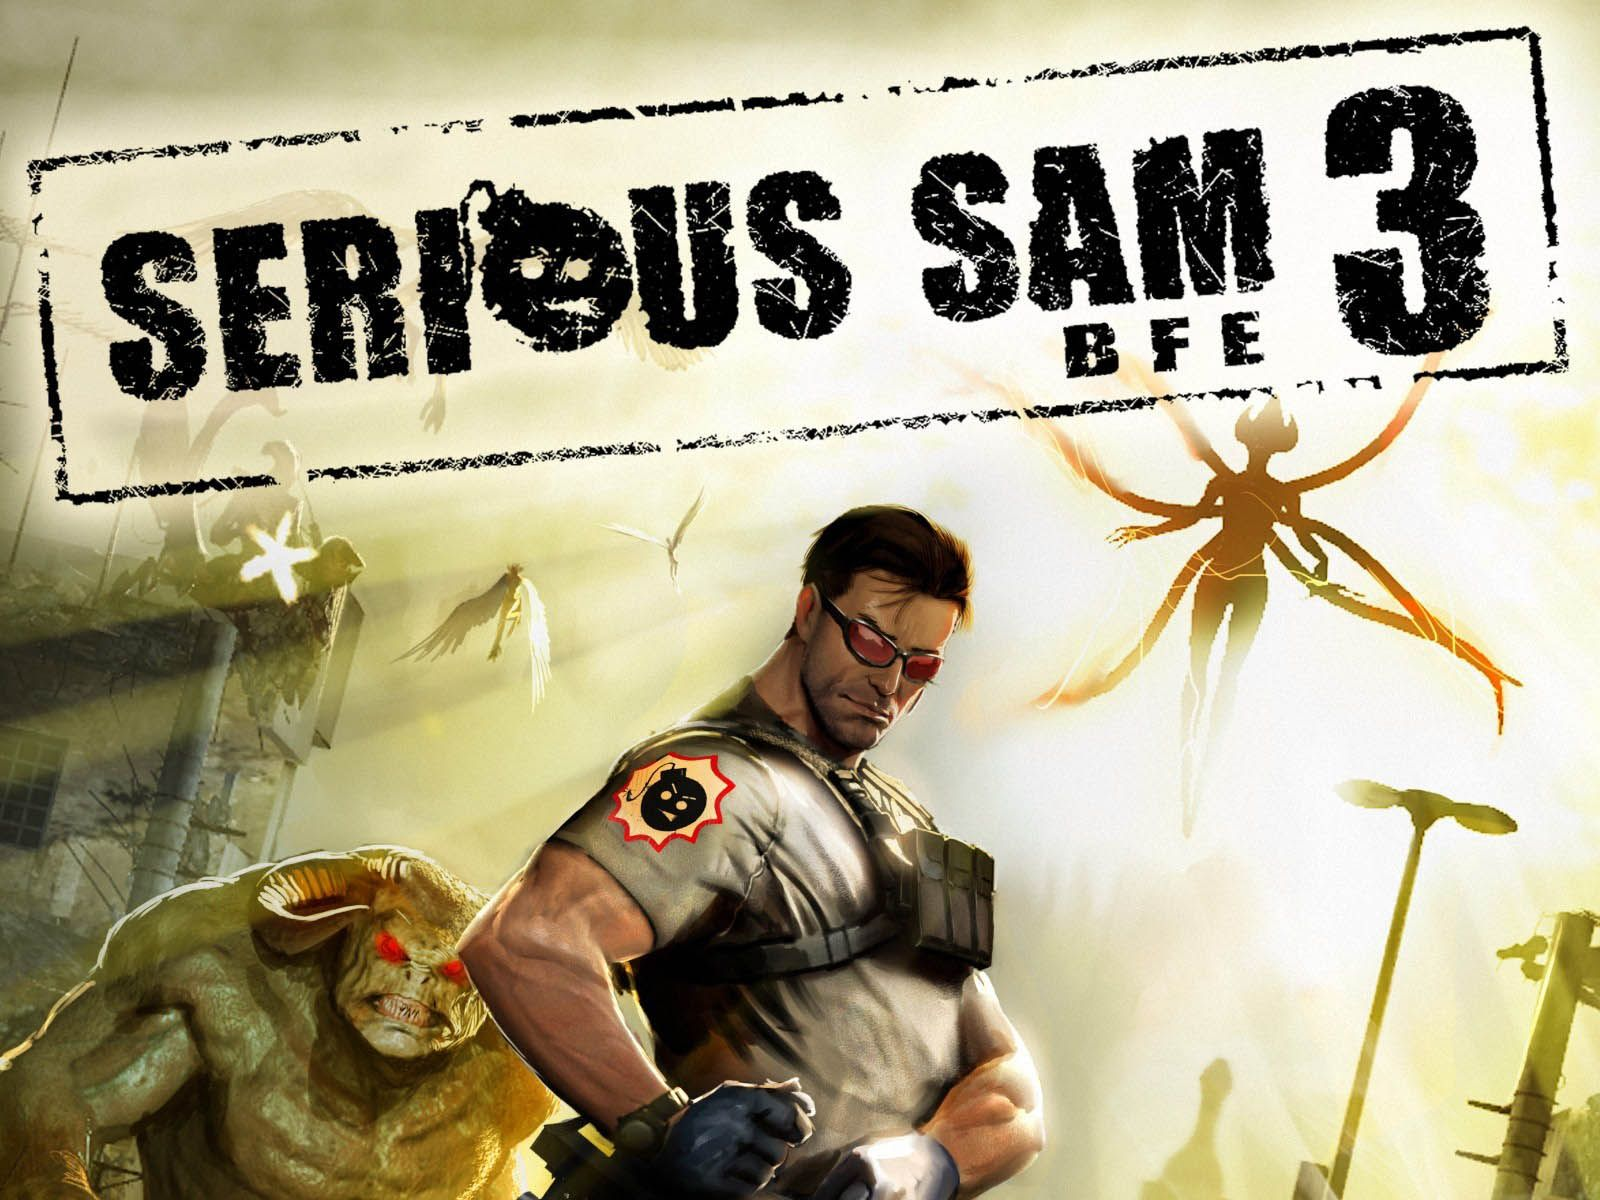 Serious Sam 3: Before First Encounter